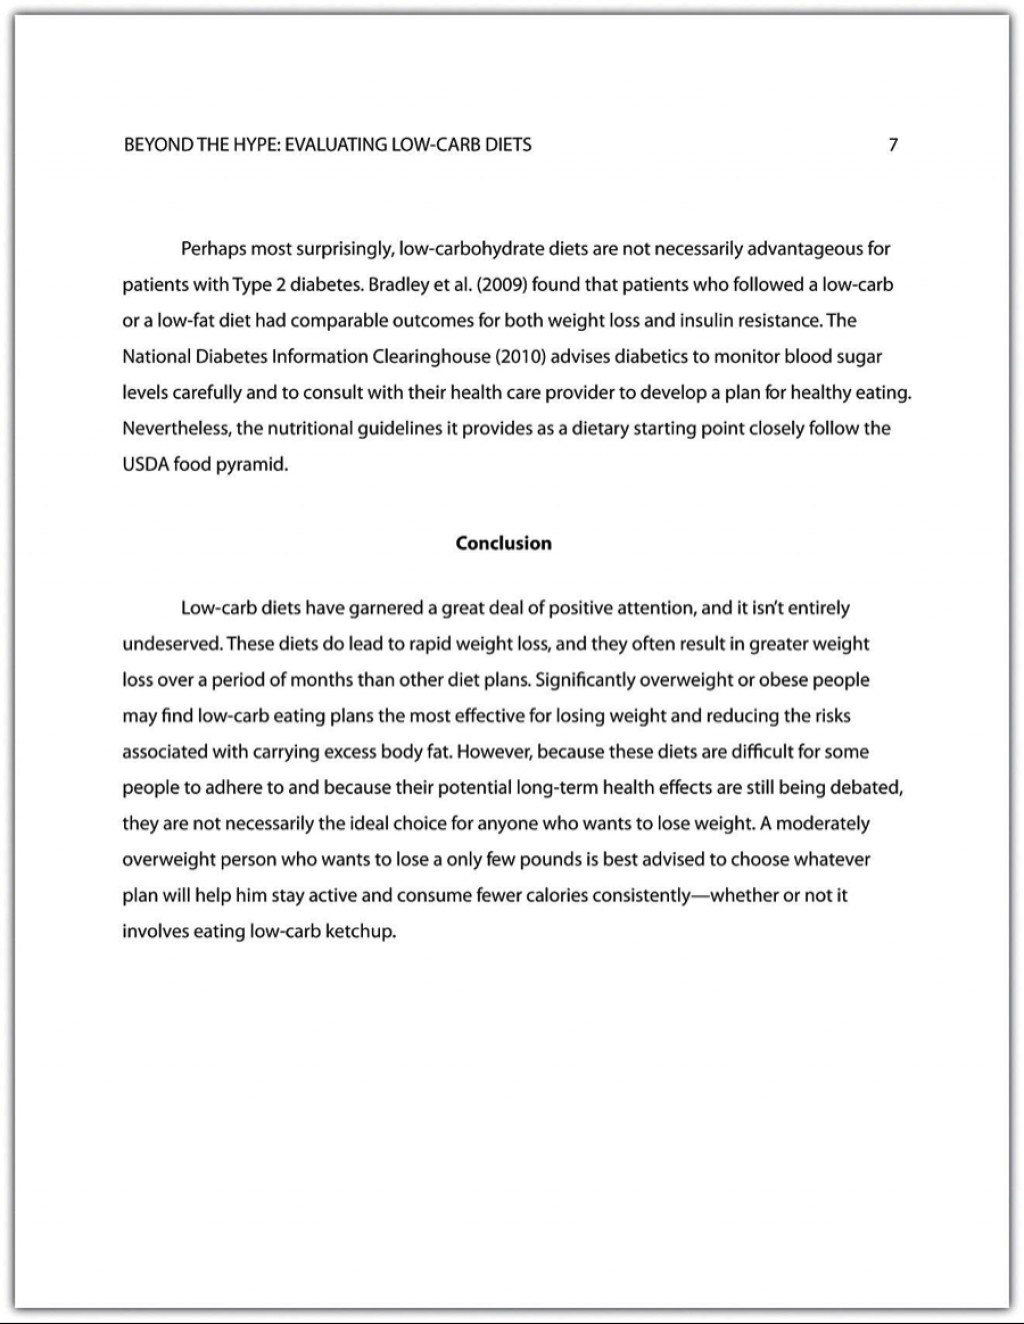 008 Equal Pay Essay Outline For Research Formidable A Paper Performance Gap Large